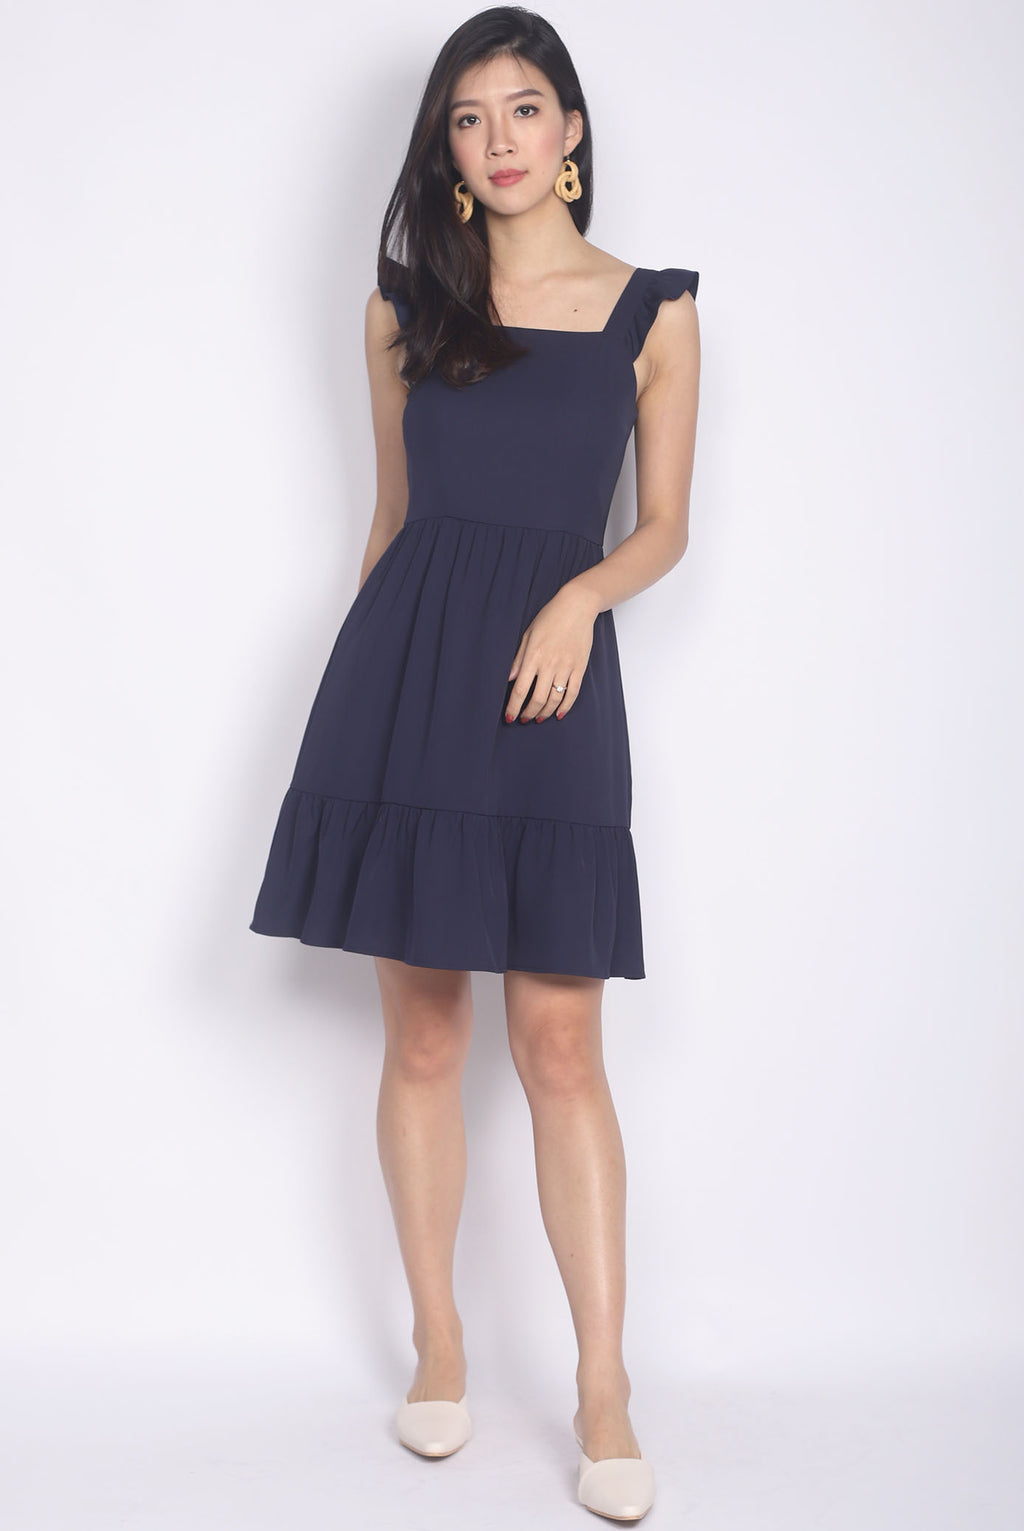 Finleigh Ruffle Strap Tiered Dress In Navy Blue